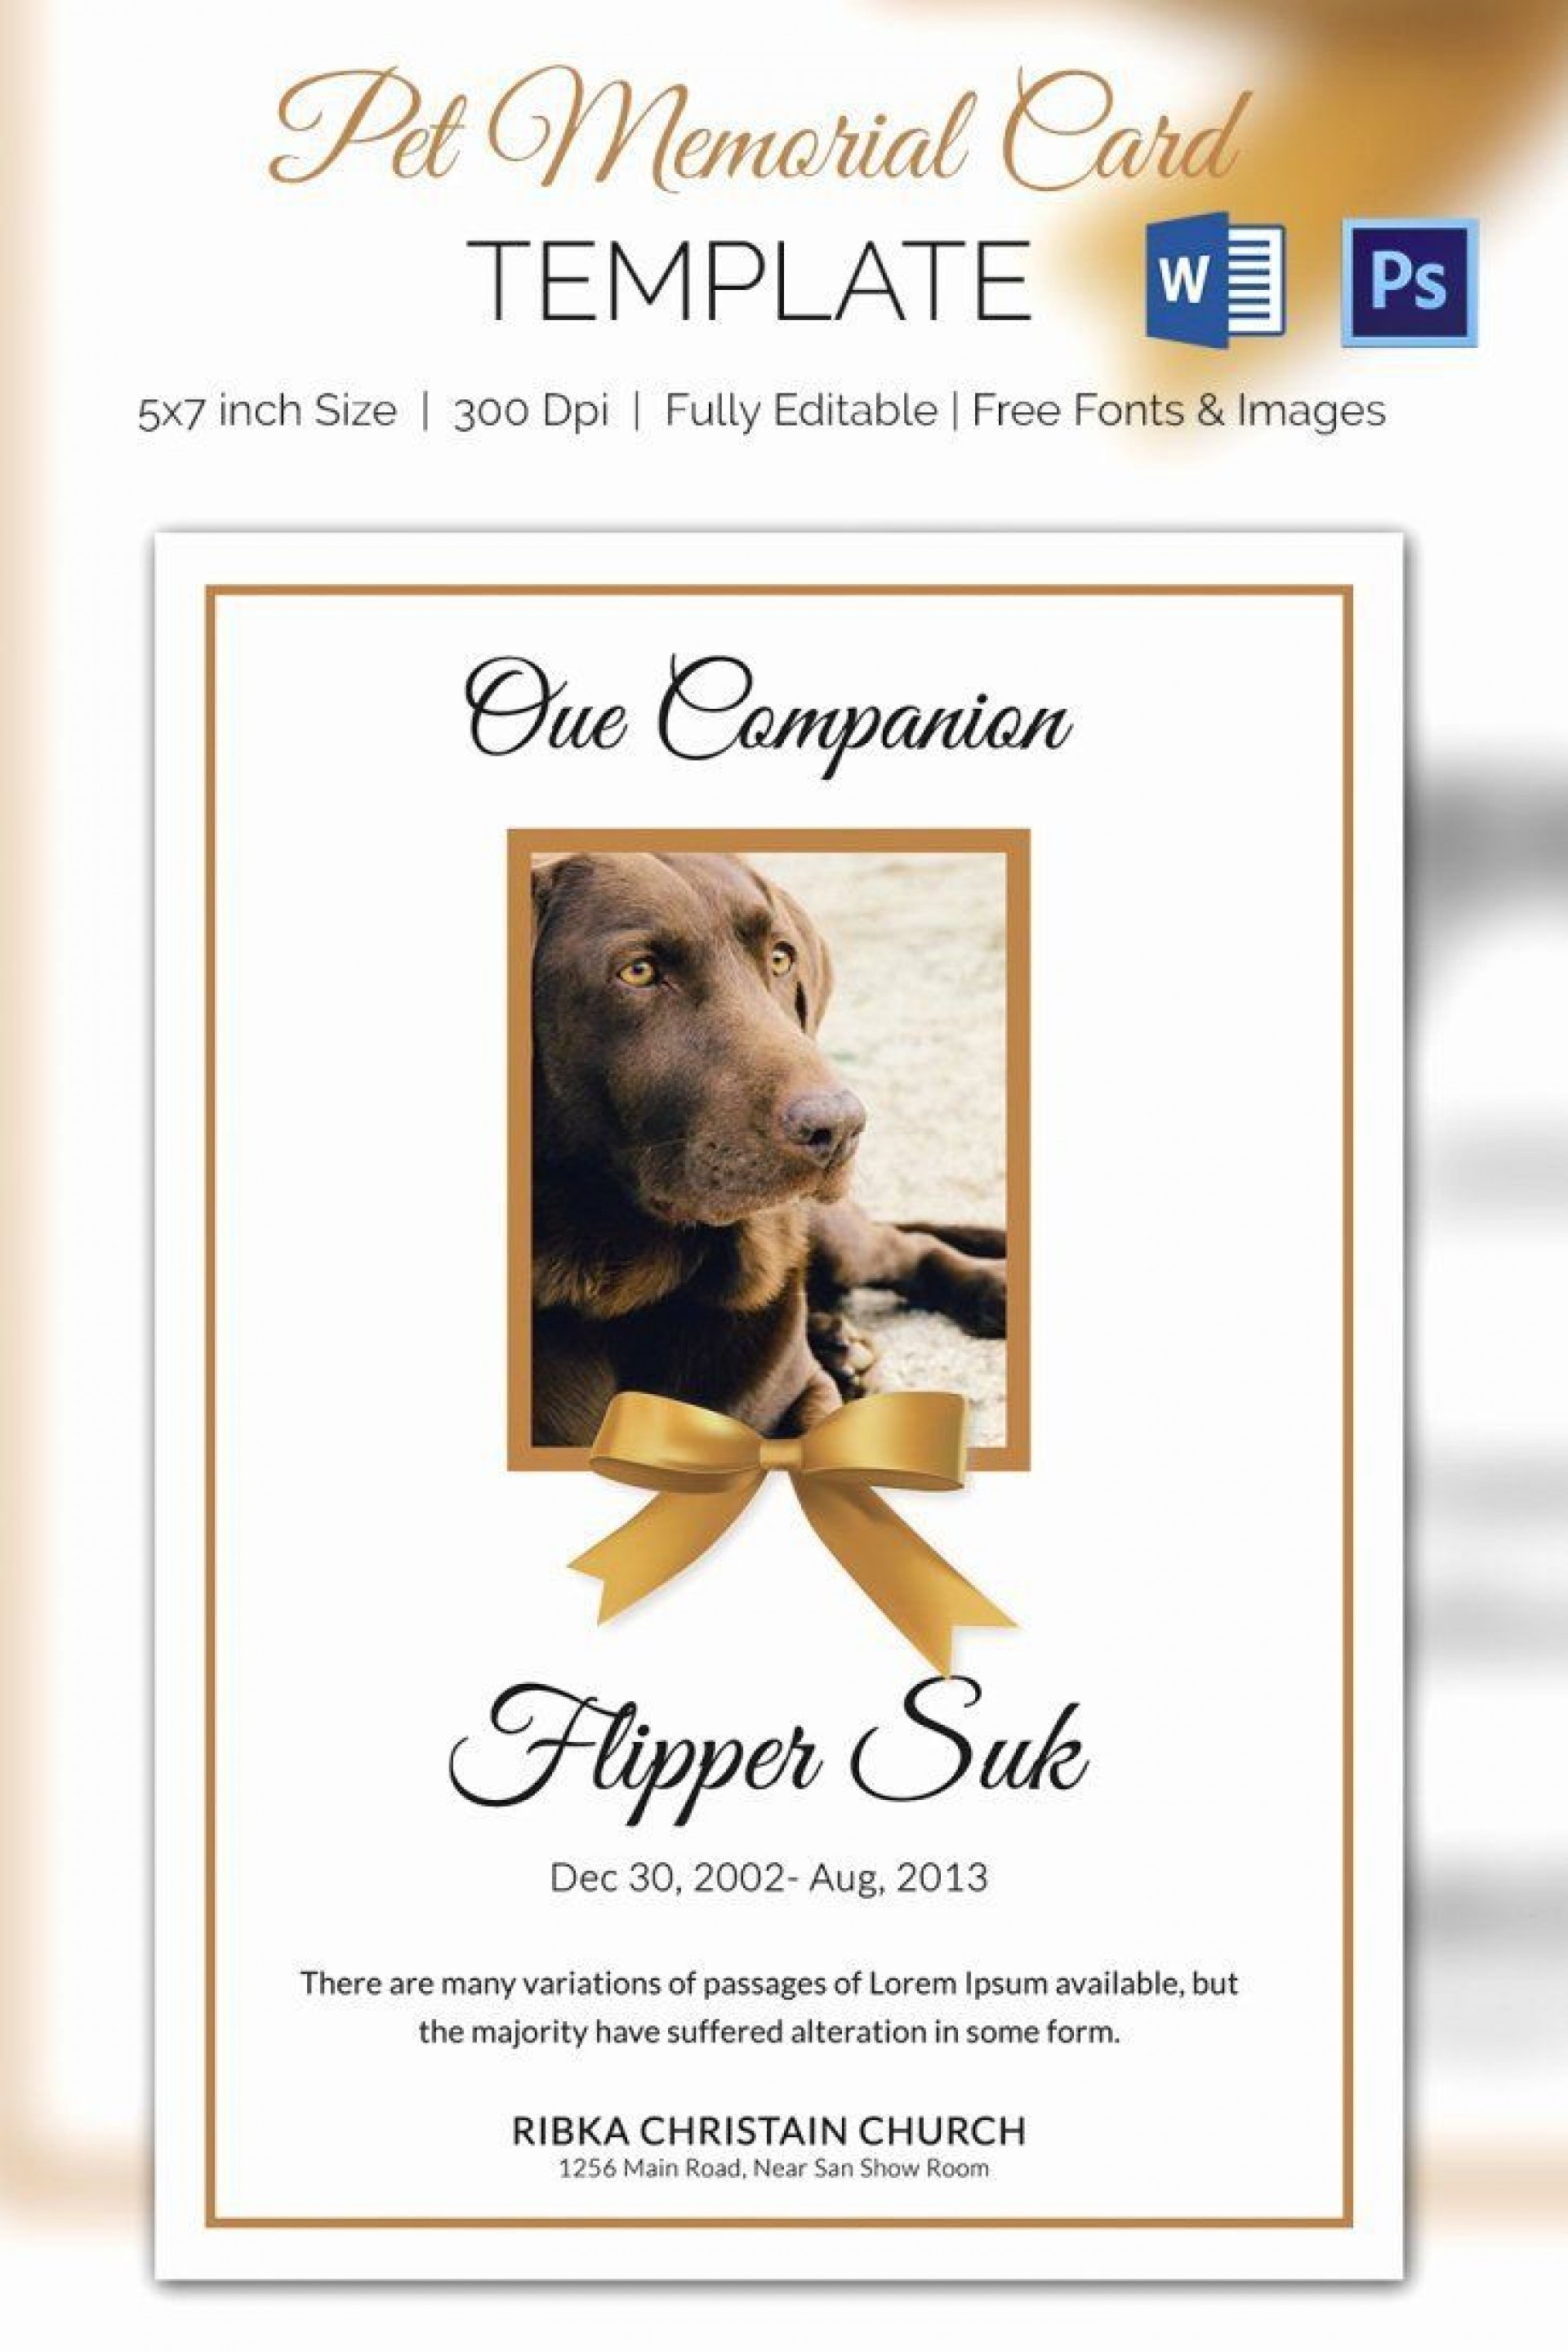 003 Awesome Memorial Card Template Free Download Design 1920